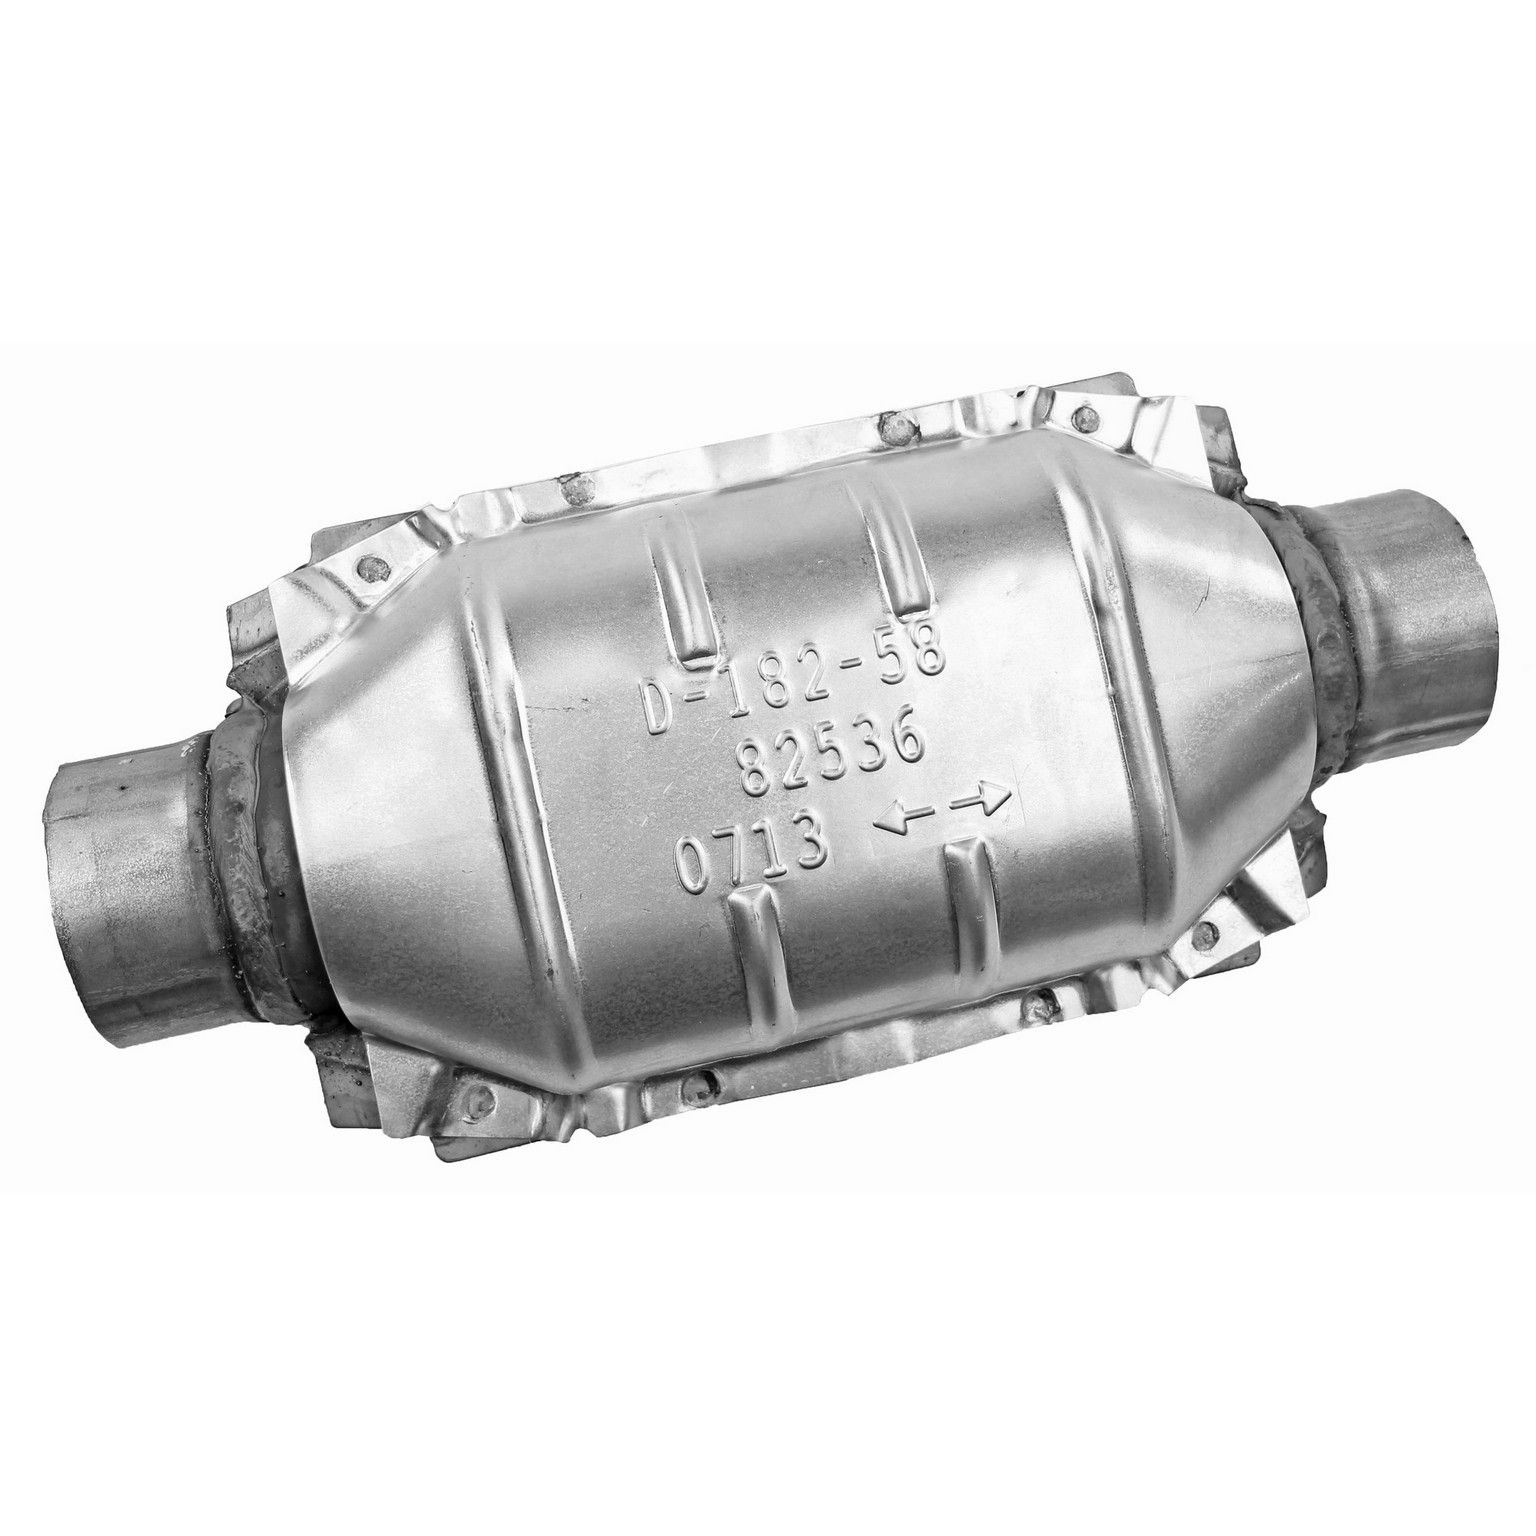 1997 Dodge Neon Catalytic Converter Na 4 Cyl 20l Walker 82536 Engine Family Vcr122vjg1el Legal For Use In The States Of California And New York: 2005 Dodge Neon Catalytic Converter At Woreks.co